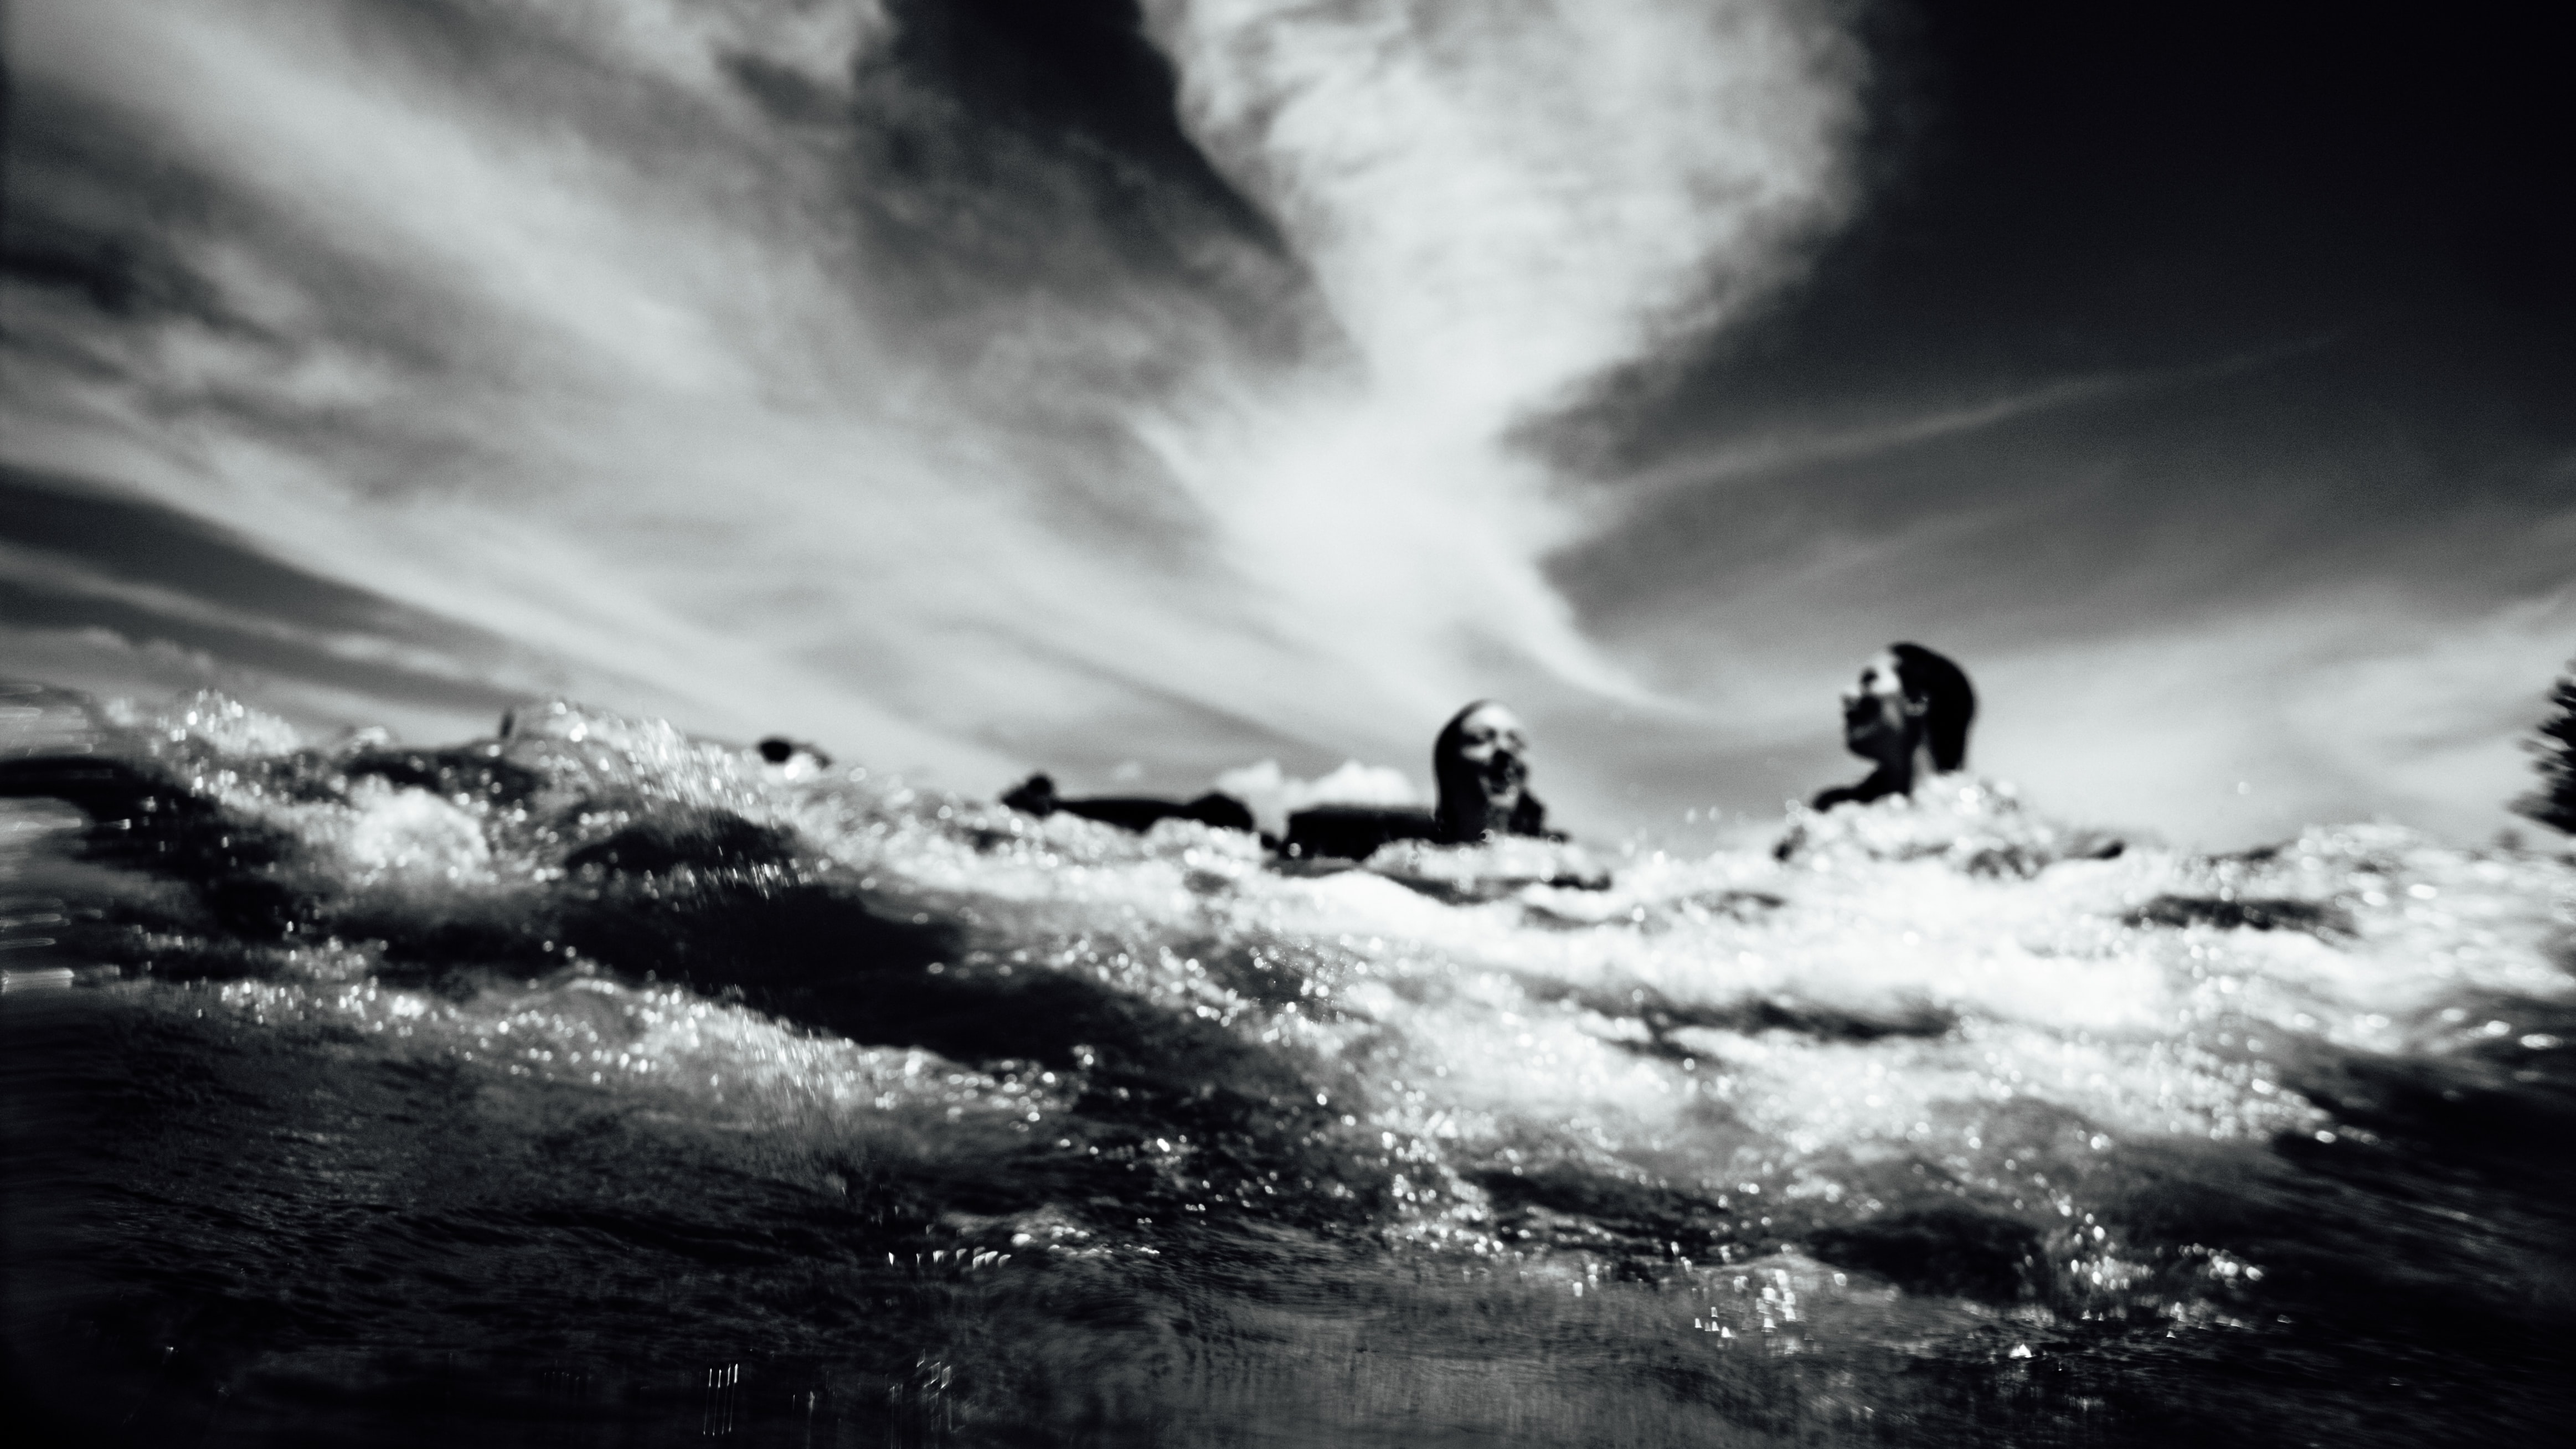 Black and white shot of people having fun in water with clouds in sky, Mount Maunganui